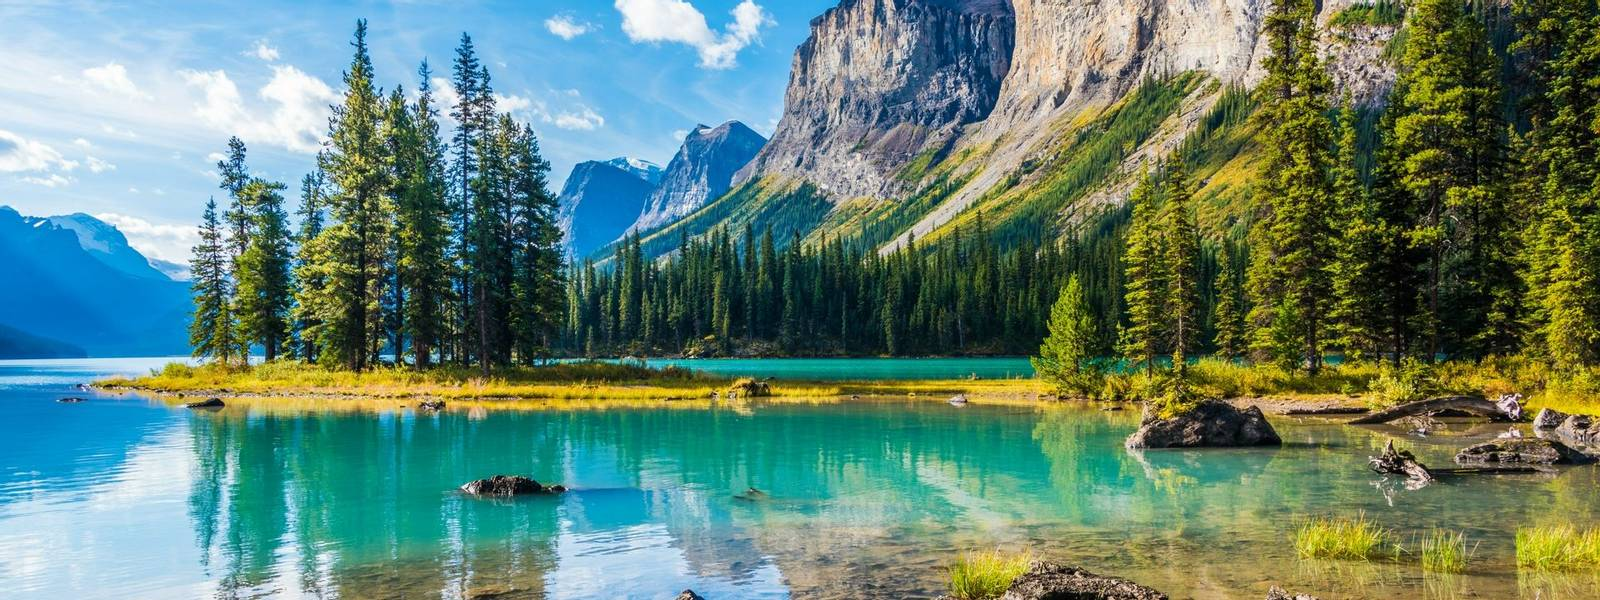 Canada-CanadianRockies-Main-AdobeStock_122028110.jpeg